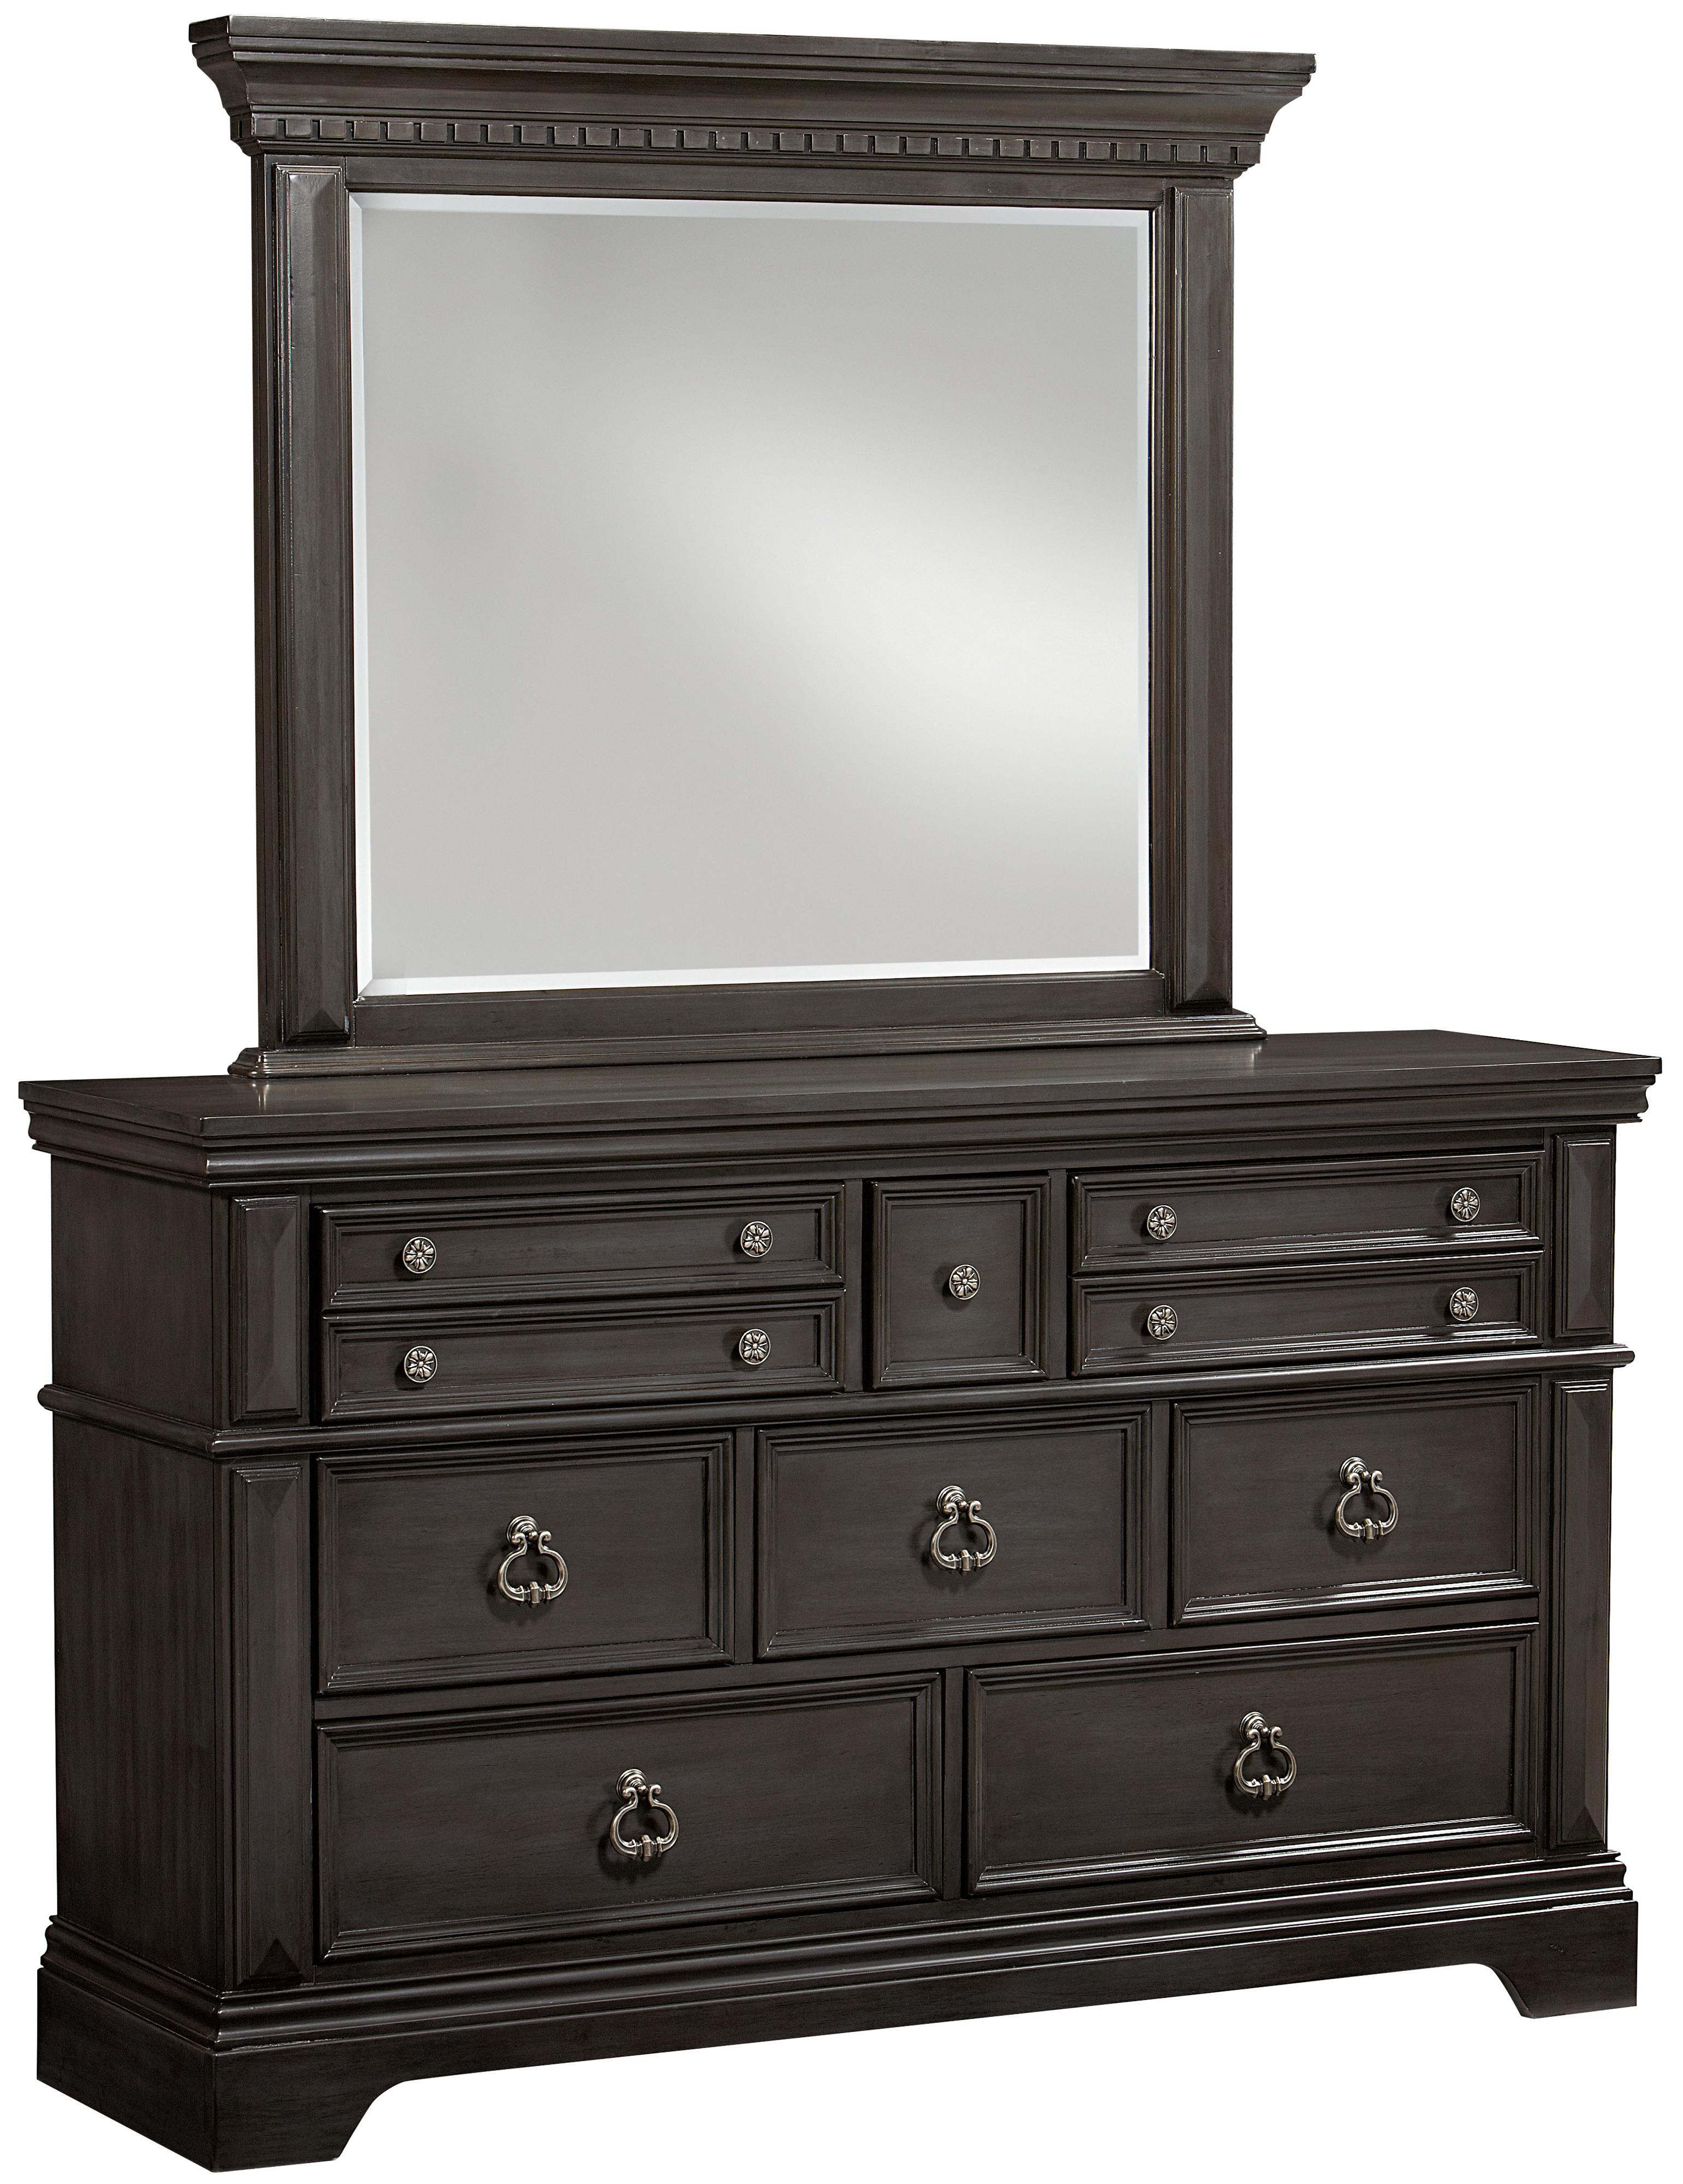 Standard Furniture Garrison Bedroom Dresser and Mirror Set - Item Number: 86308+86309